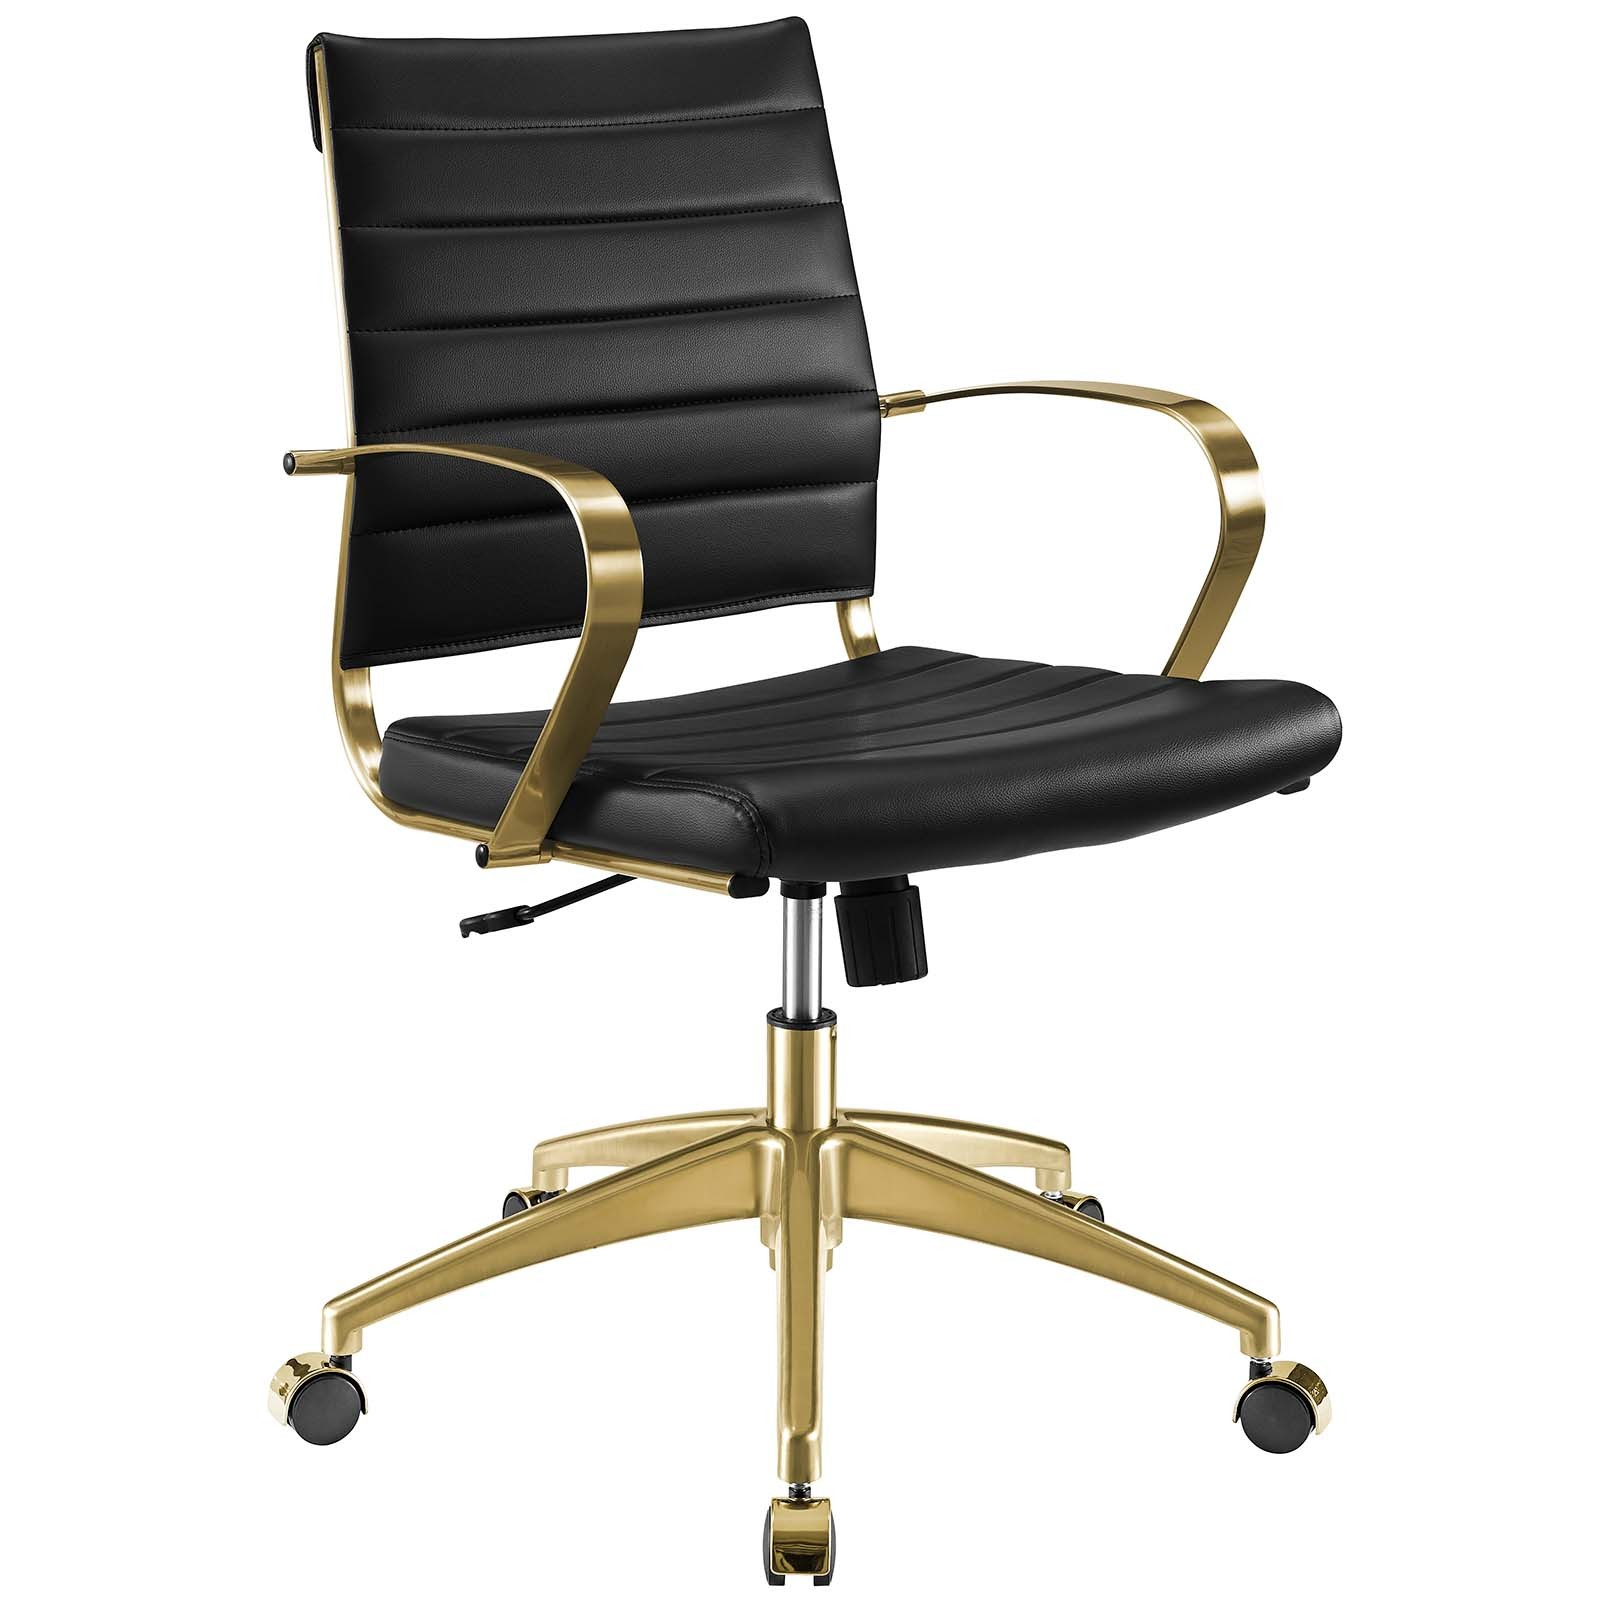 Jive Gold And Black Gold Stainless Steel Midback Office Chair Eei 3418 Gld Blk 1stopbedrooms